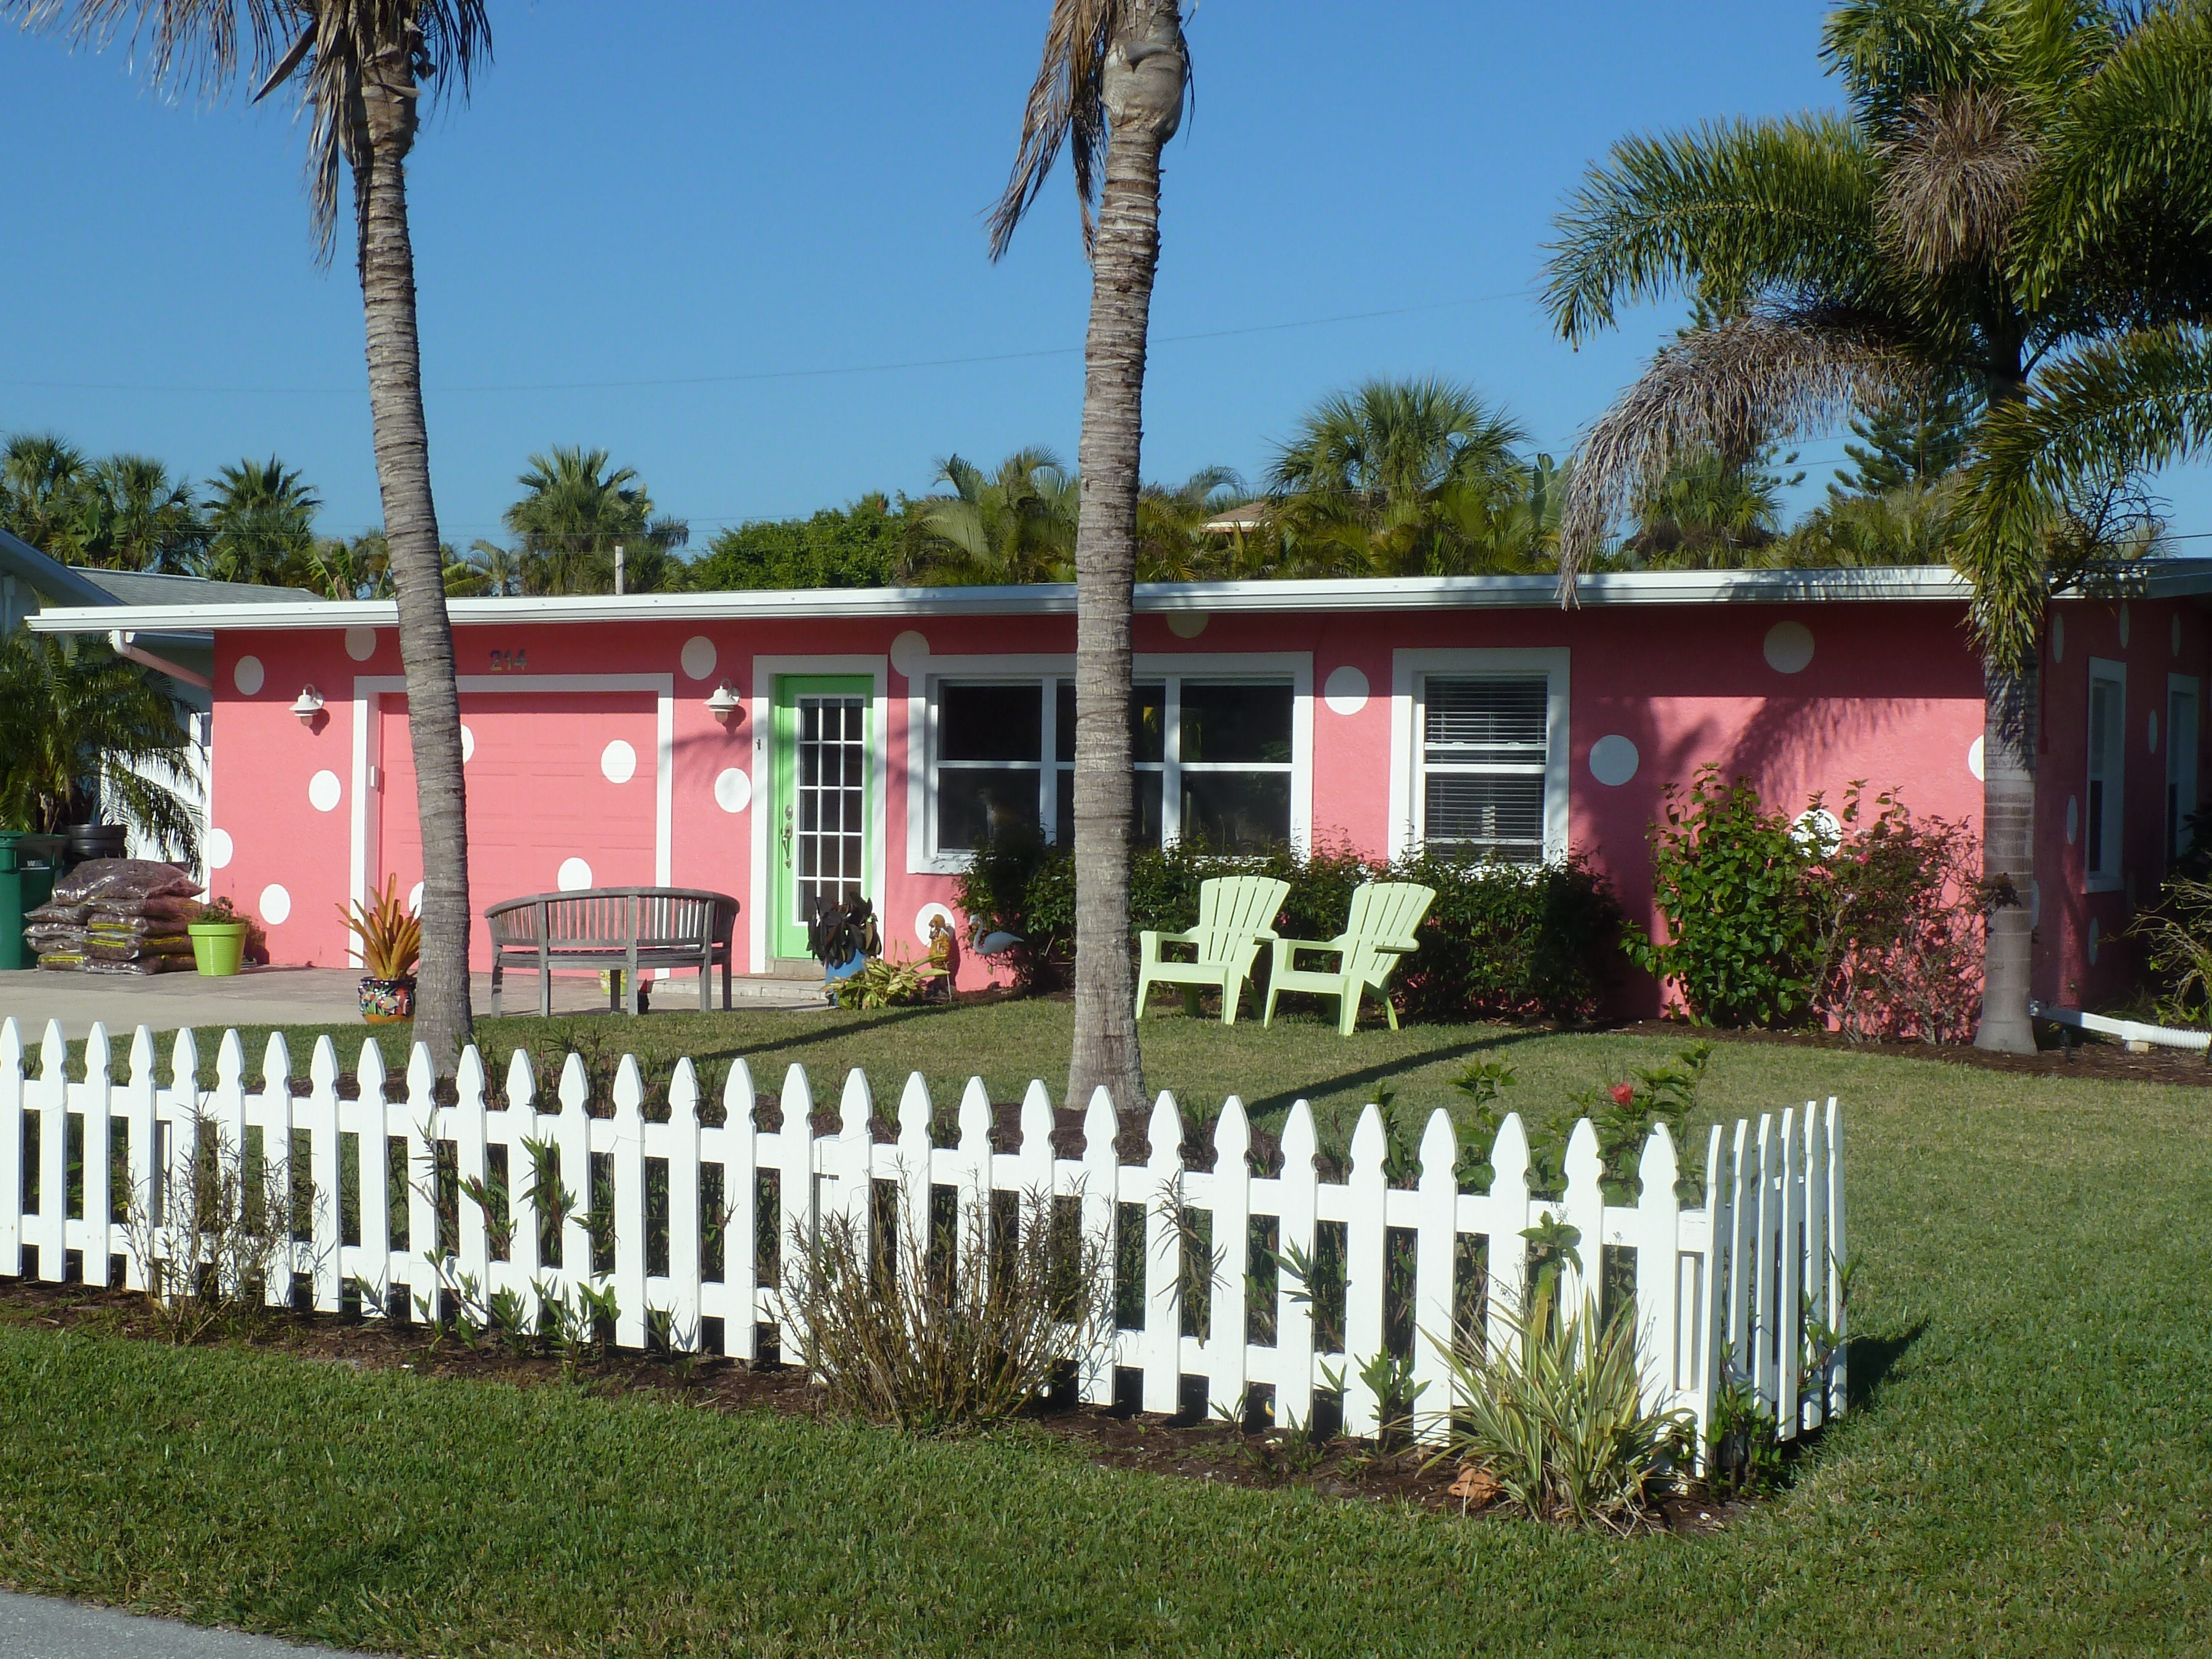 Best Images About Small Homes On Pinterest Florida Houses - Florida home design